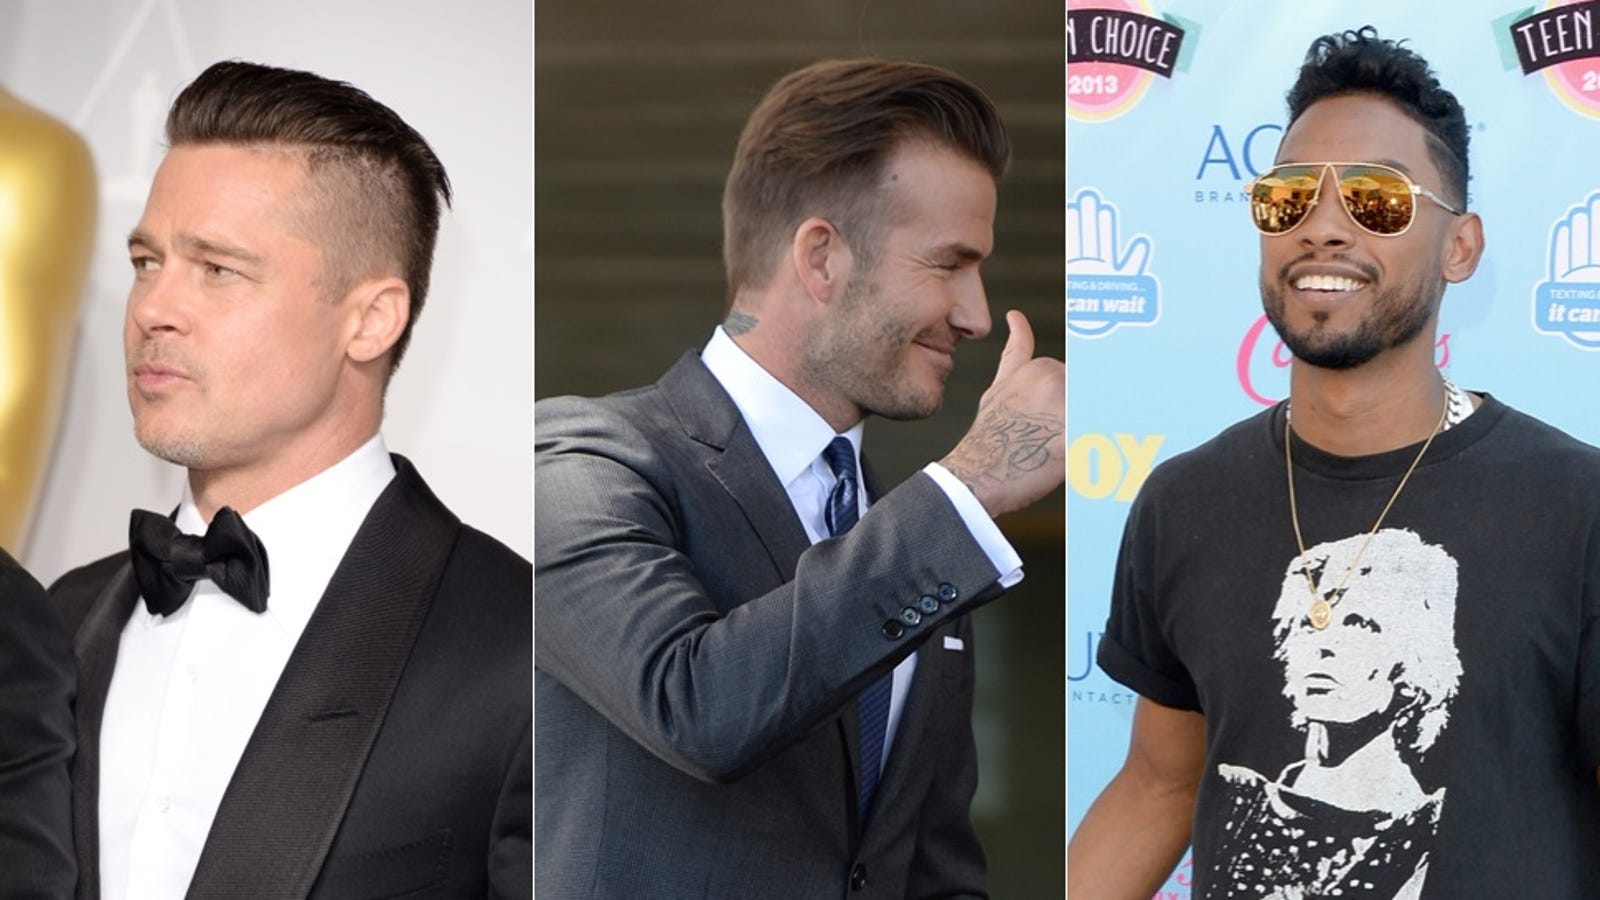 Every Dude You Know Is Getting This Haircut